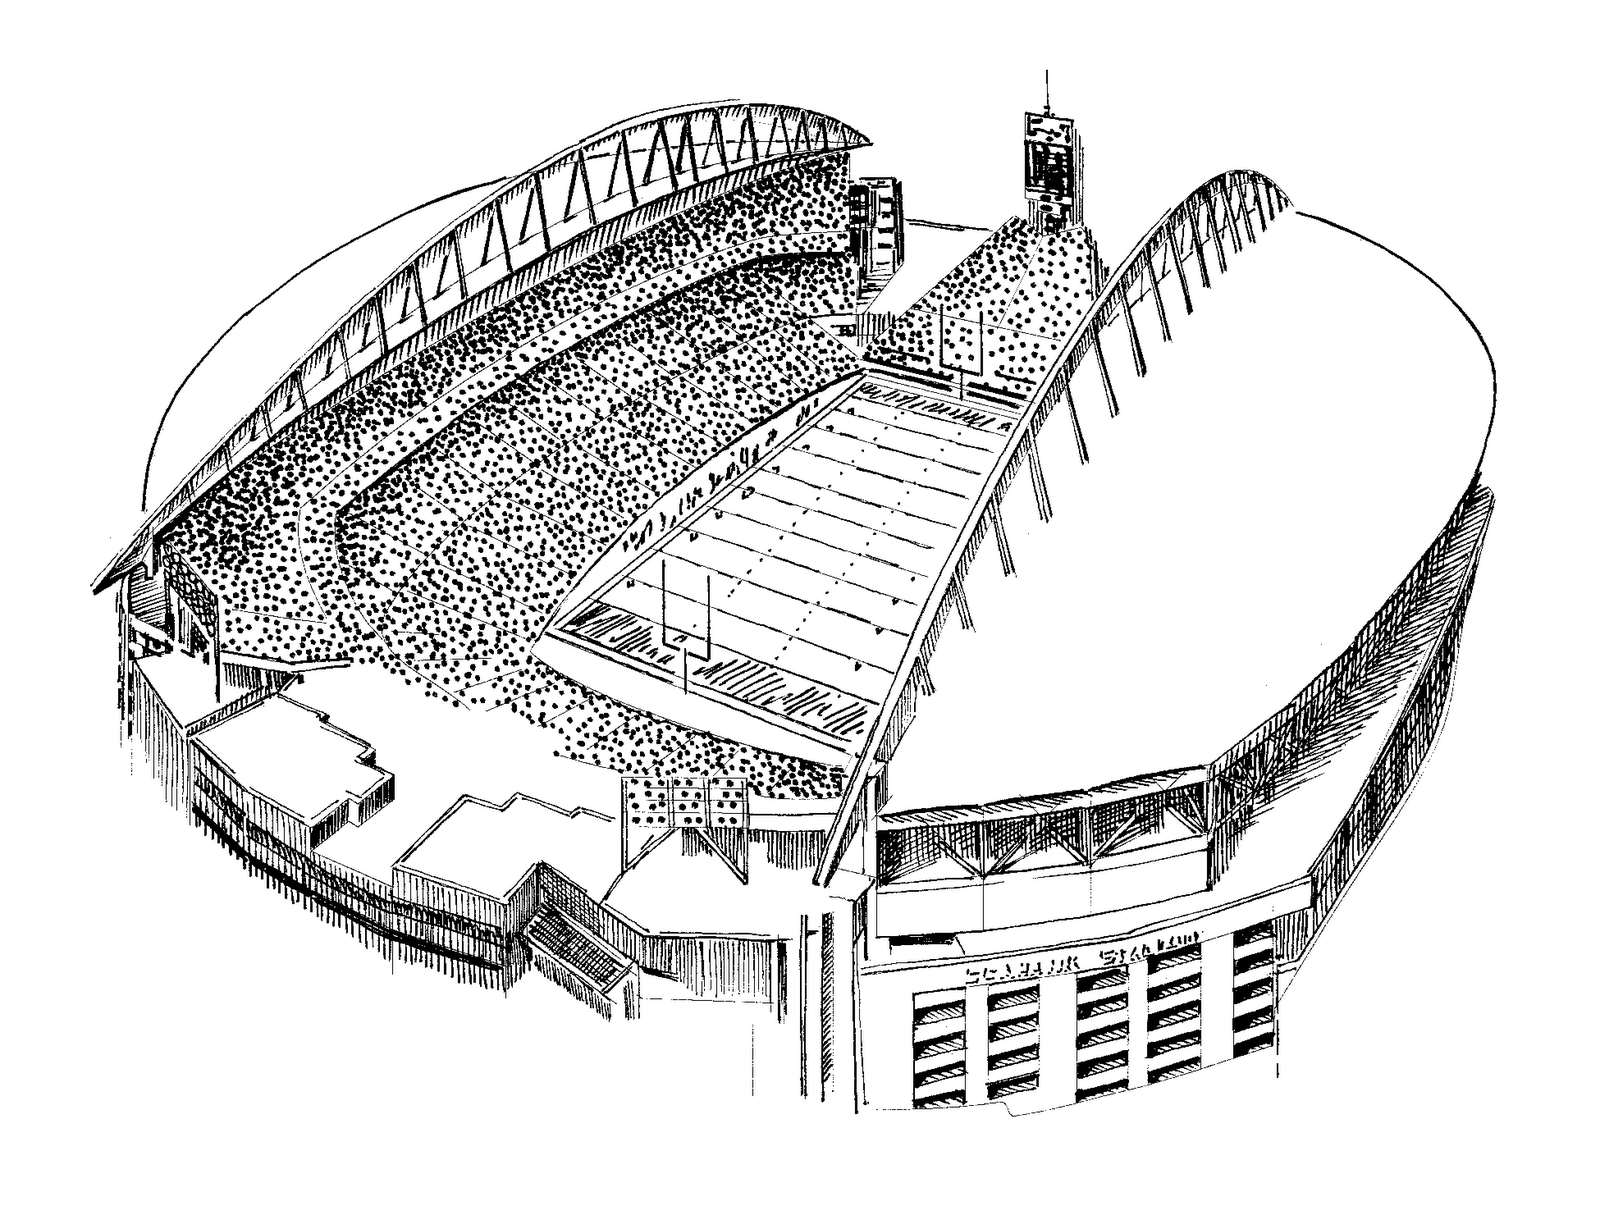 Seahawks Coloring Page - Coloring Home